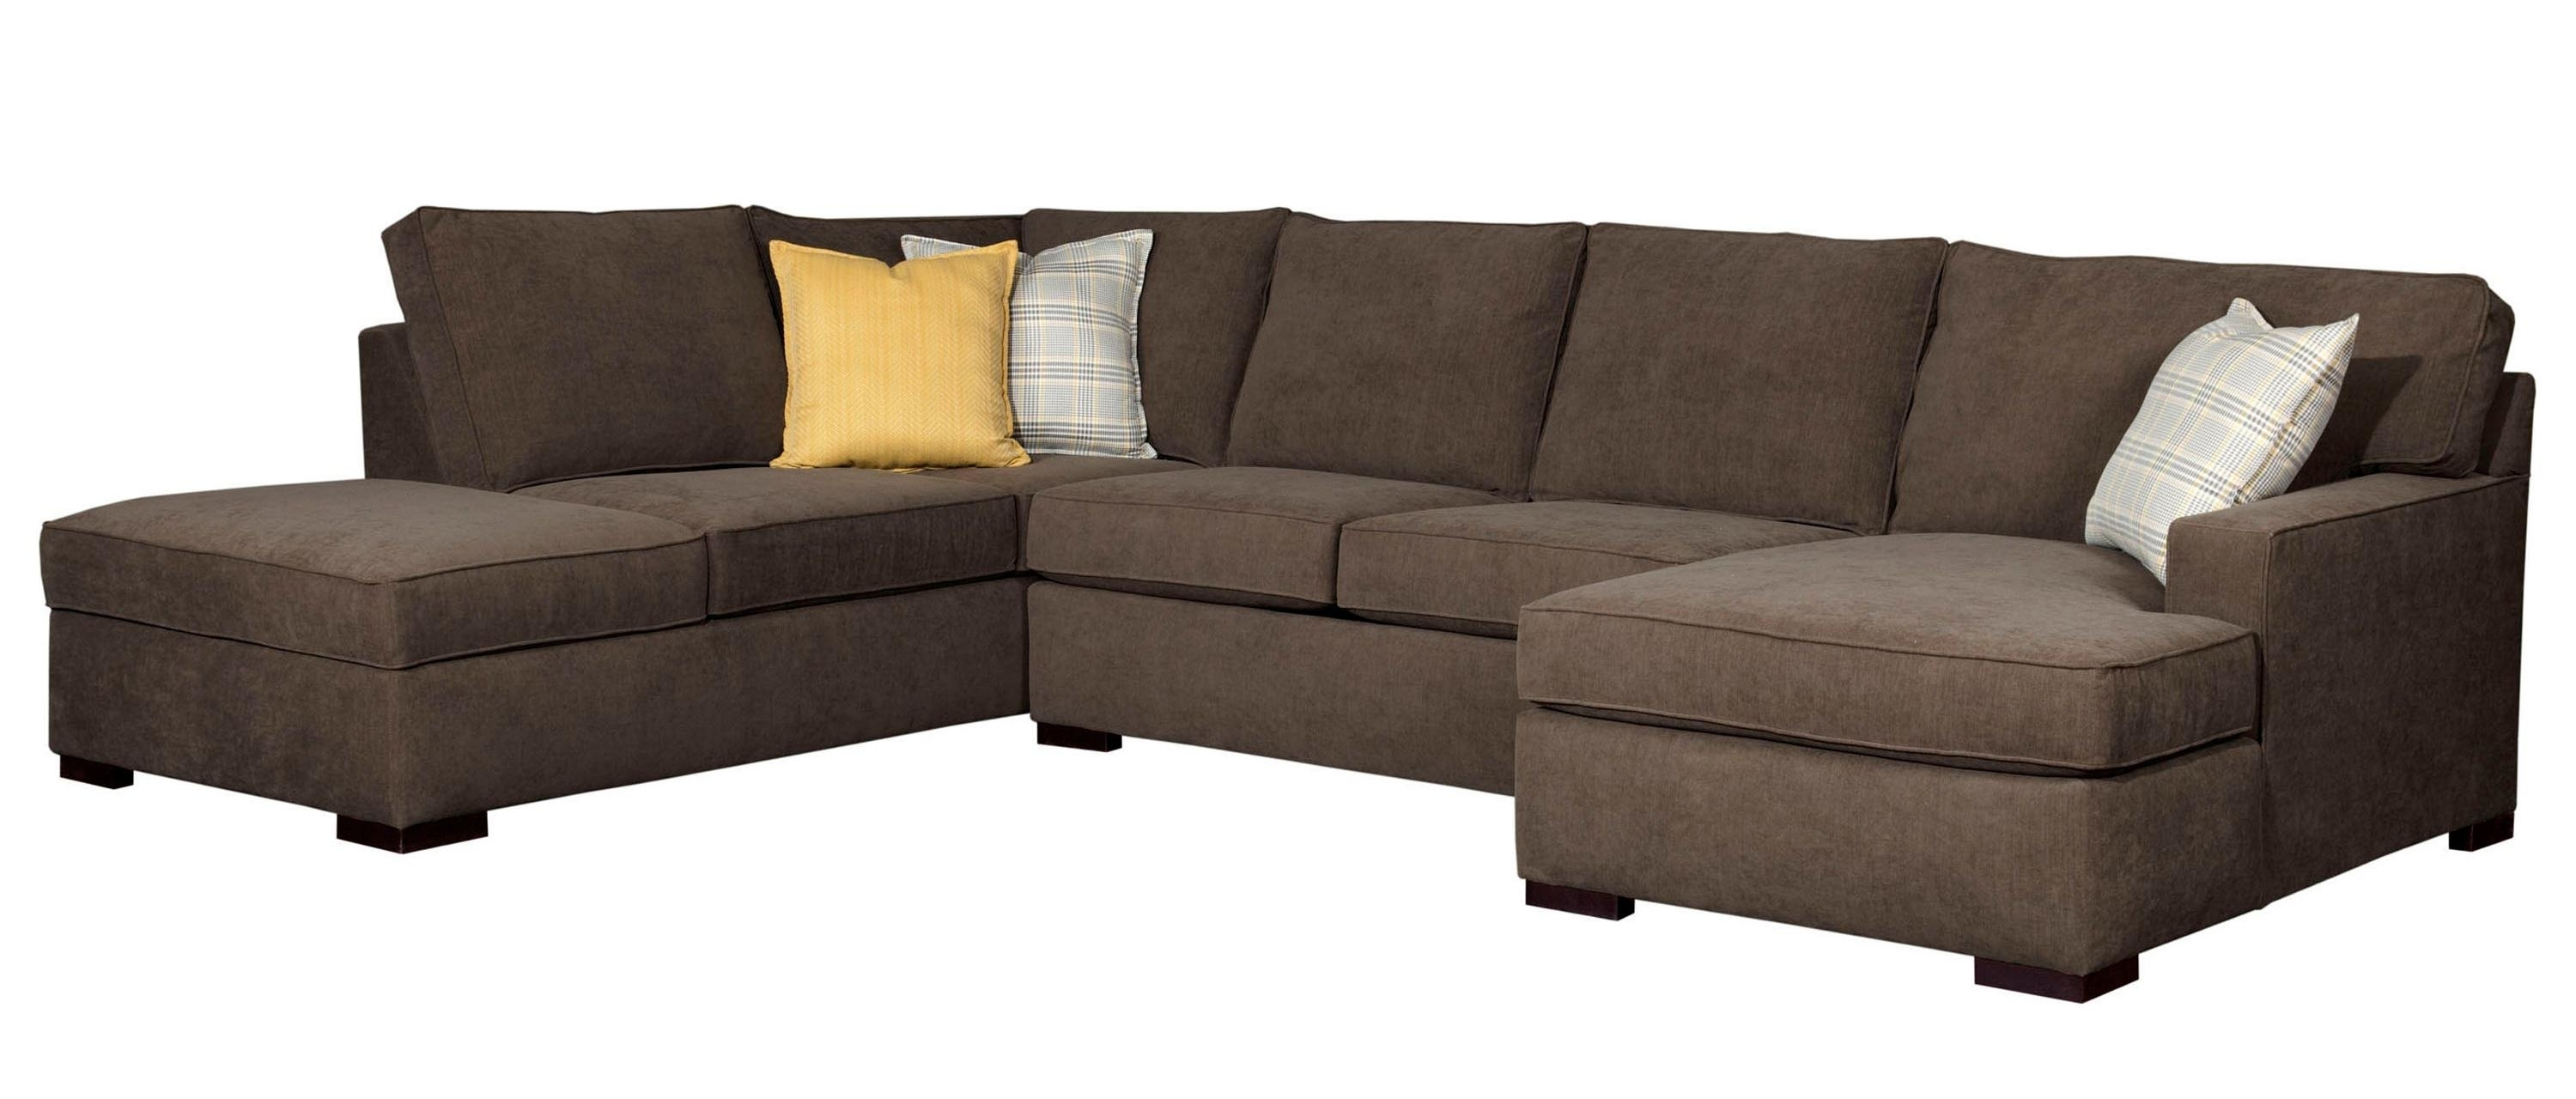 Jonathan Louis Choices - Artemis Four Piece Sectional With Laf intended for Sam Levitz Sectional Sofas